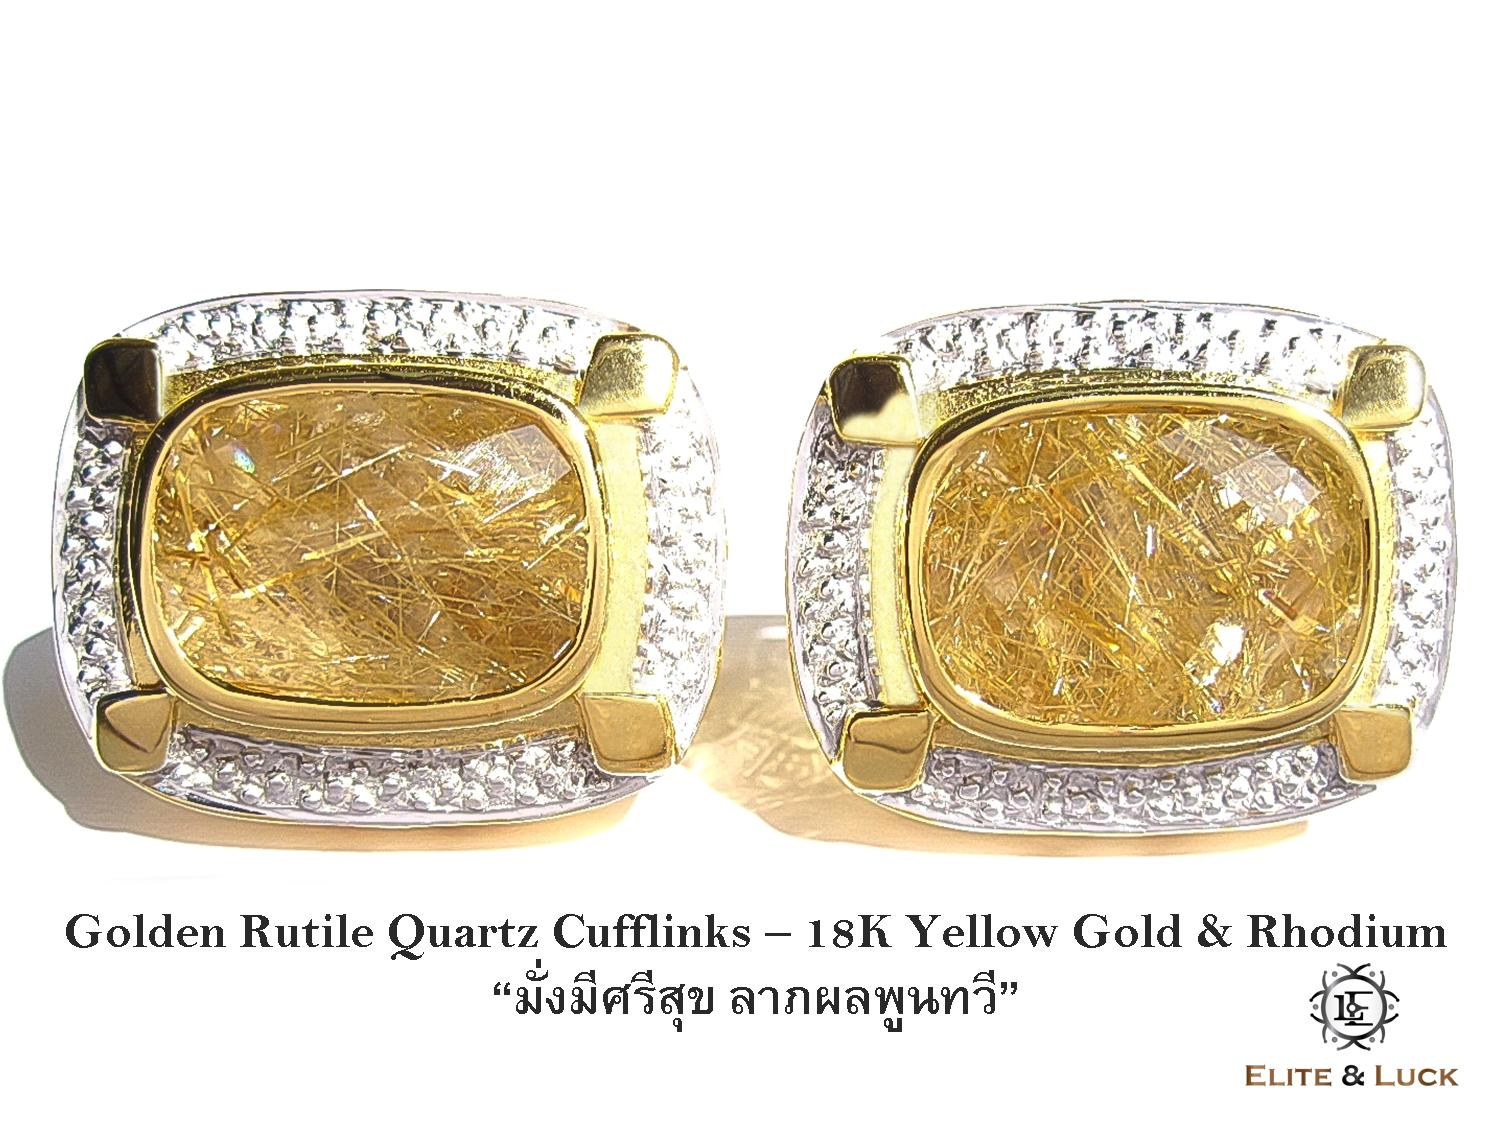 "Golden Rutile Quartz Sterling Silver Cufflinks ""True King's Quality"" สี 18K Yellow Gold & Rhodium รุ่น Luxury"